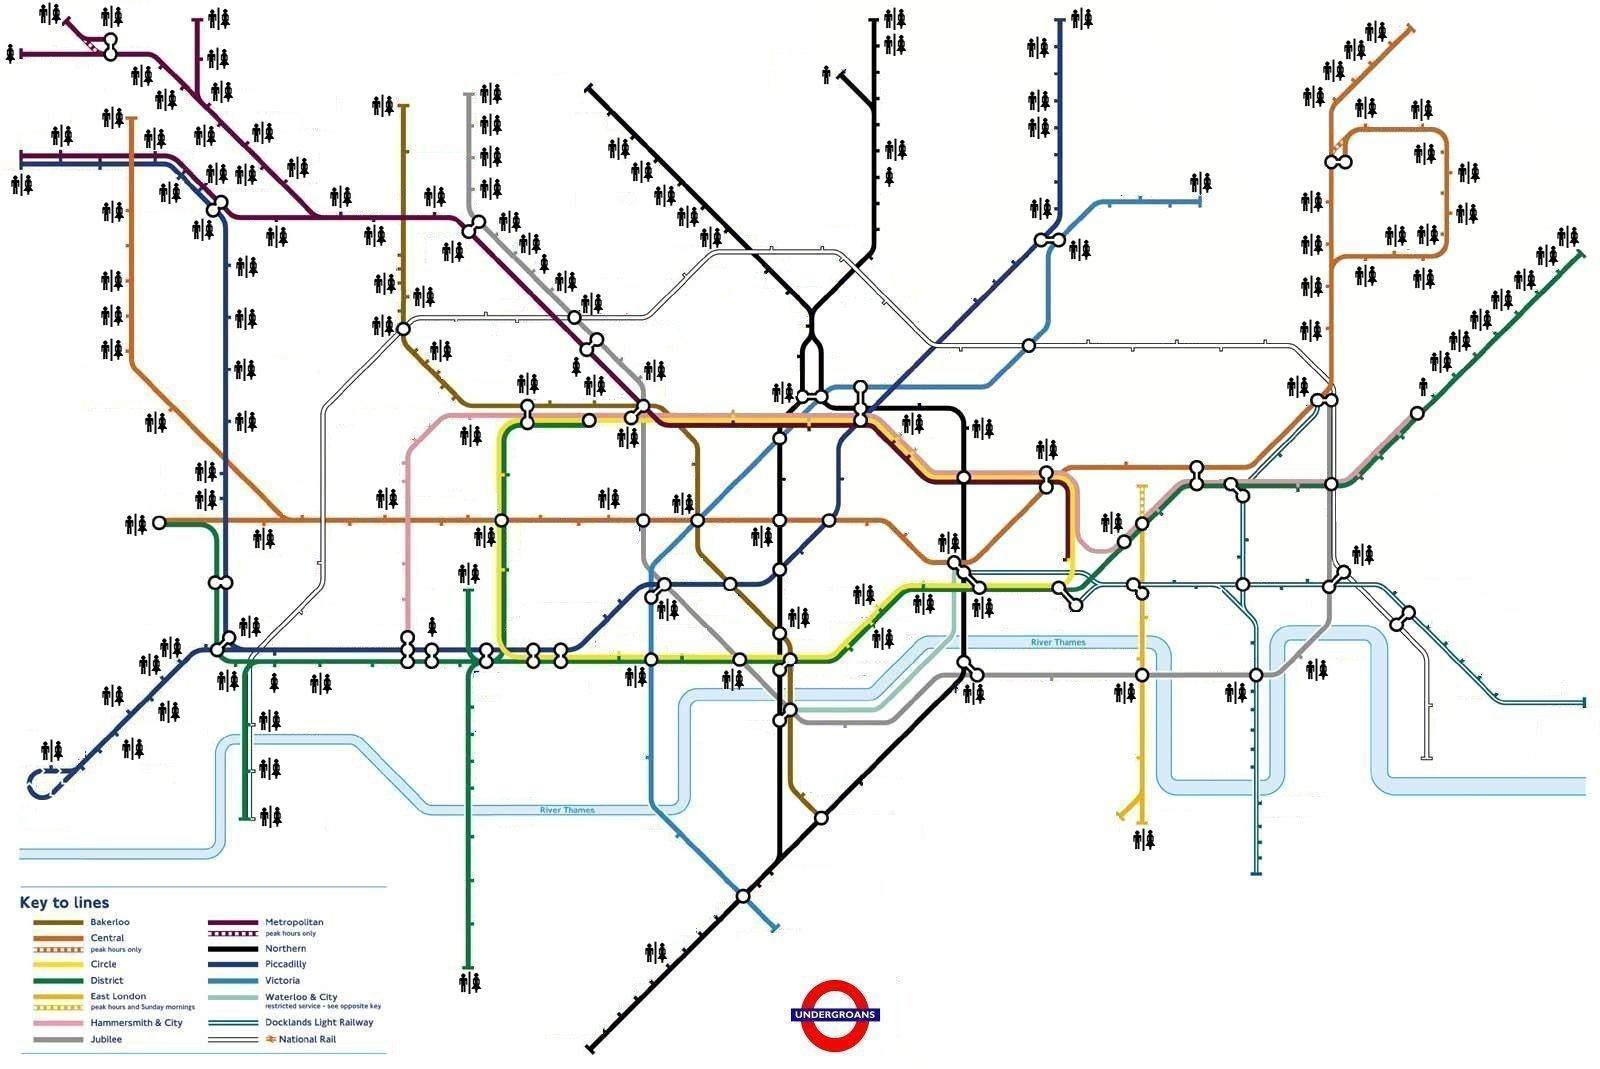 Geofftech Tube Silly Tube Maps - Northern line map london